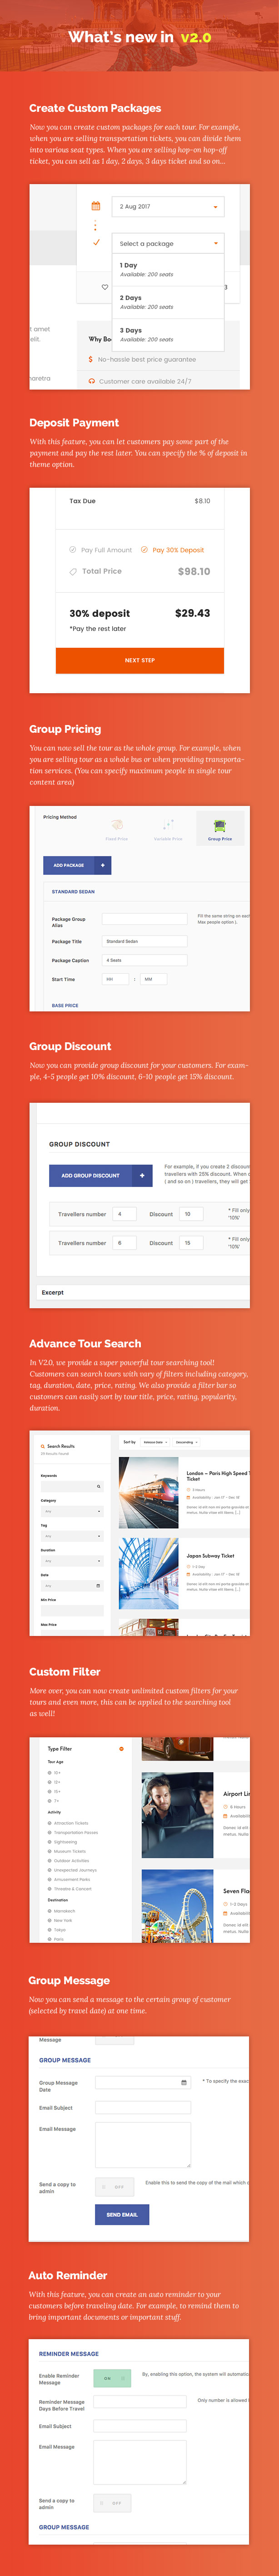 Travel Tour - Tour Booking, Travel Booking WordPress Theme - 10